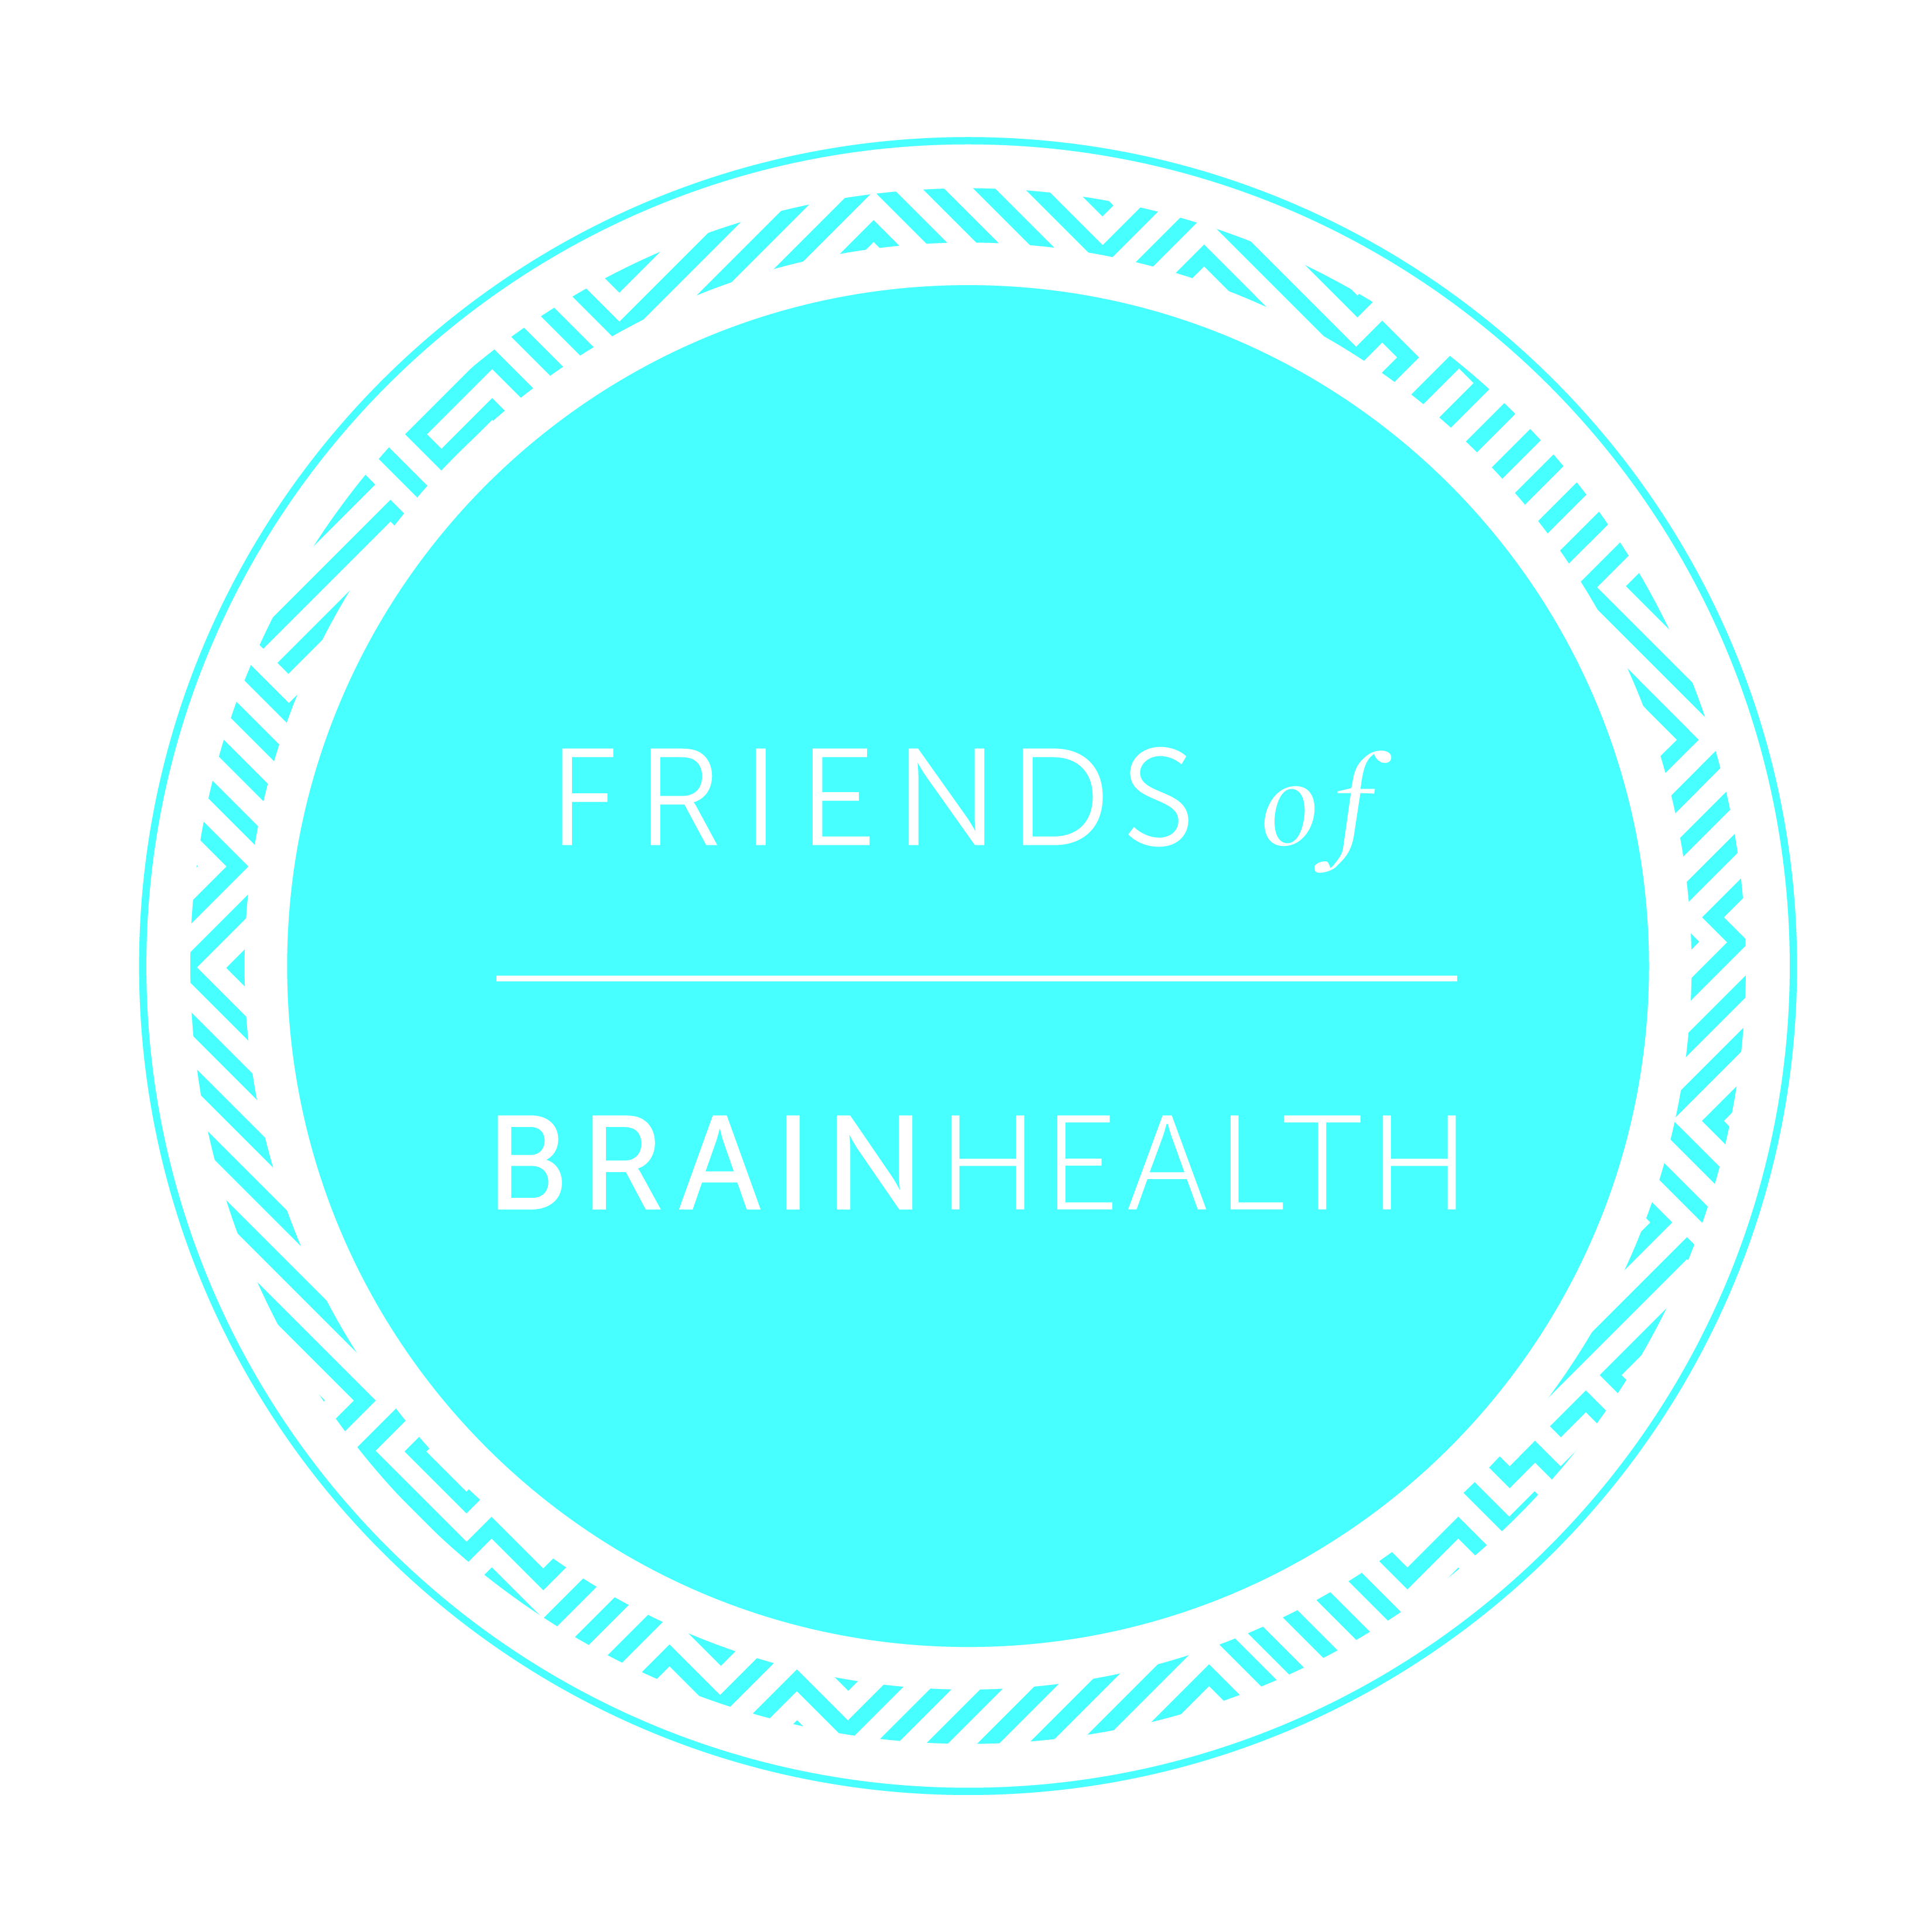 Friends of BrainHealth - Center for BrainHealth